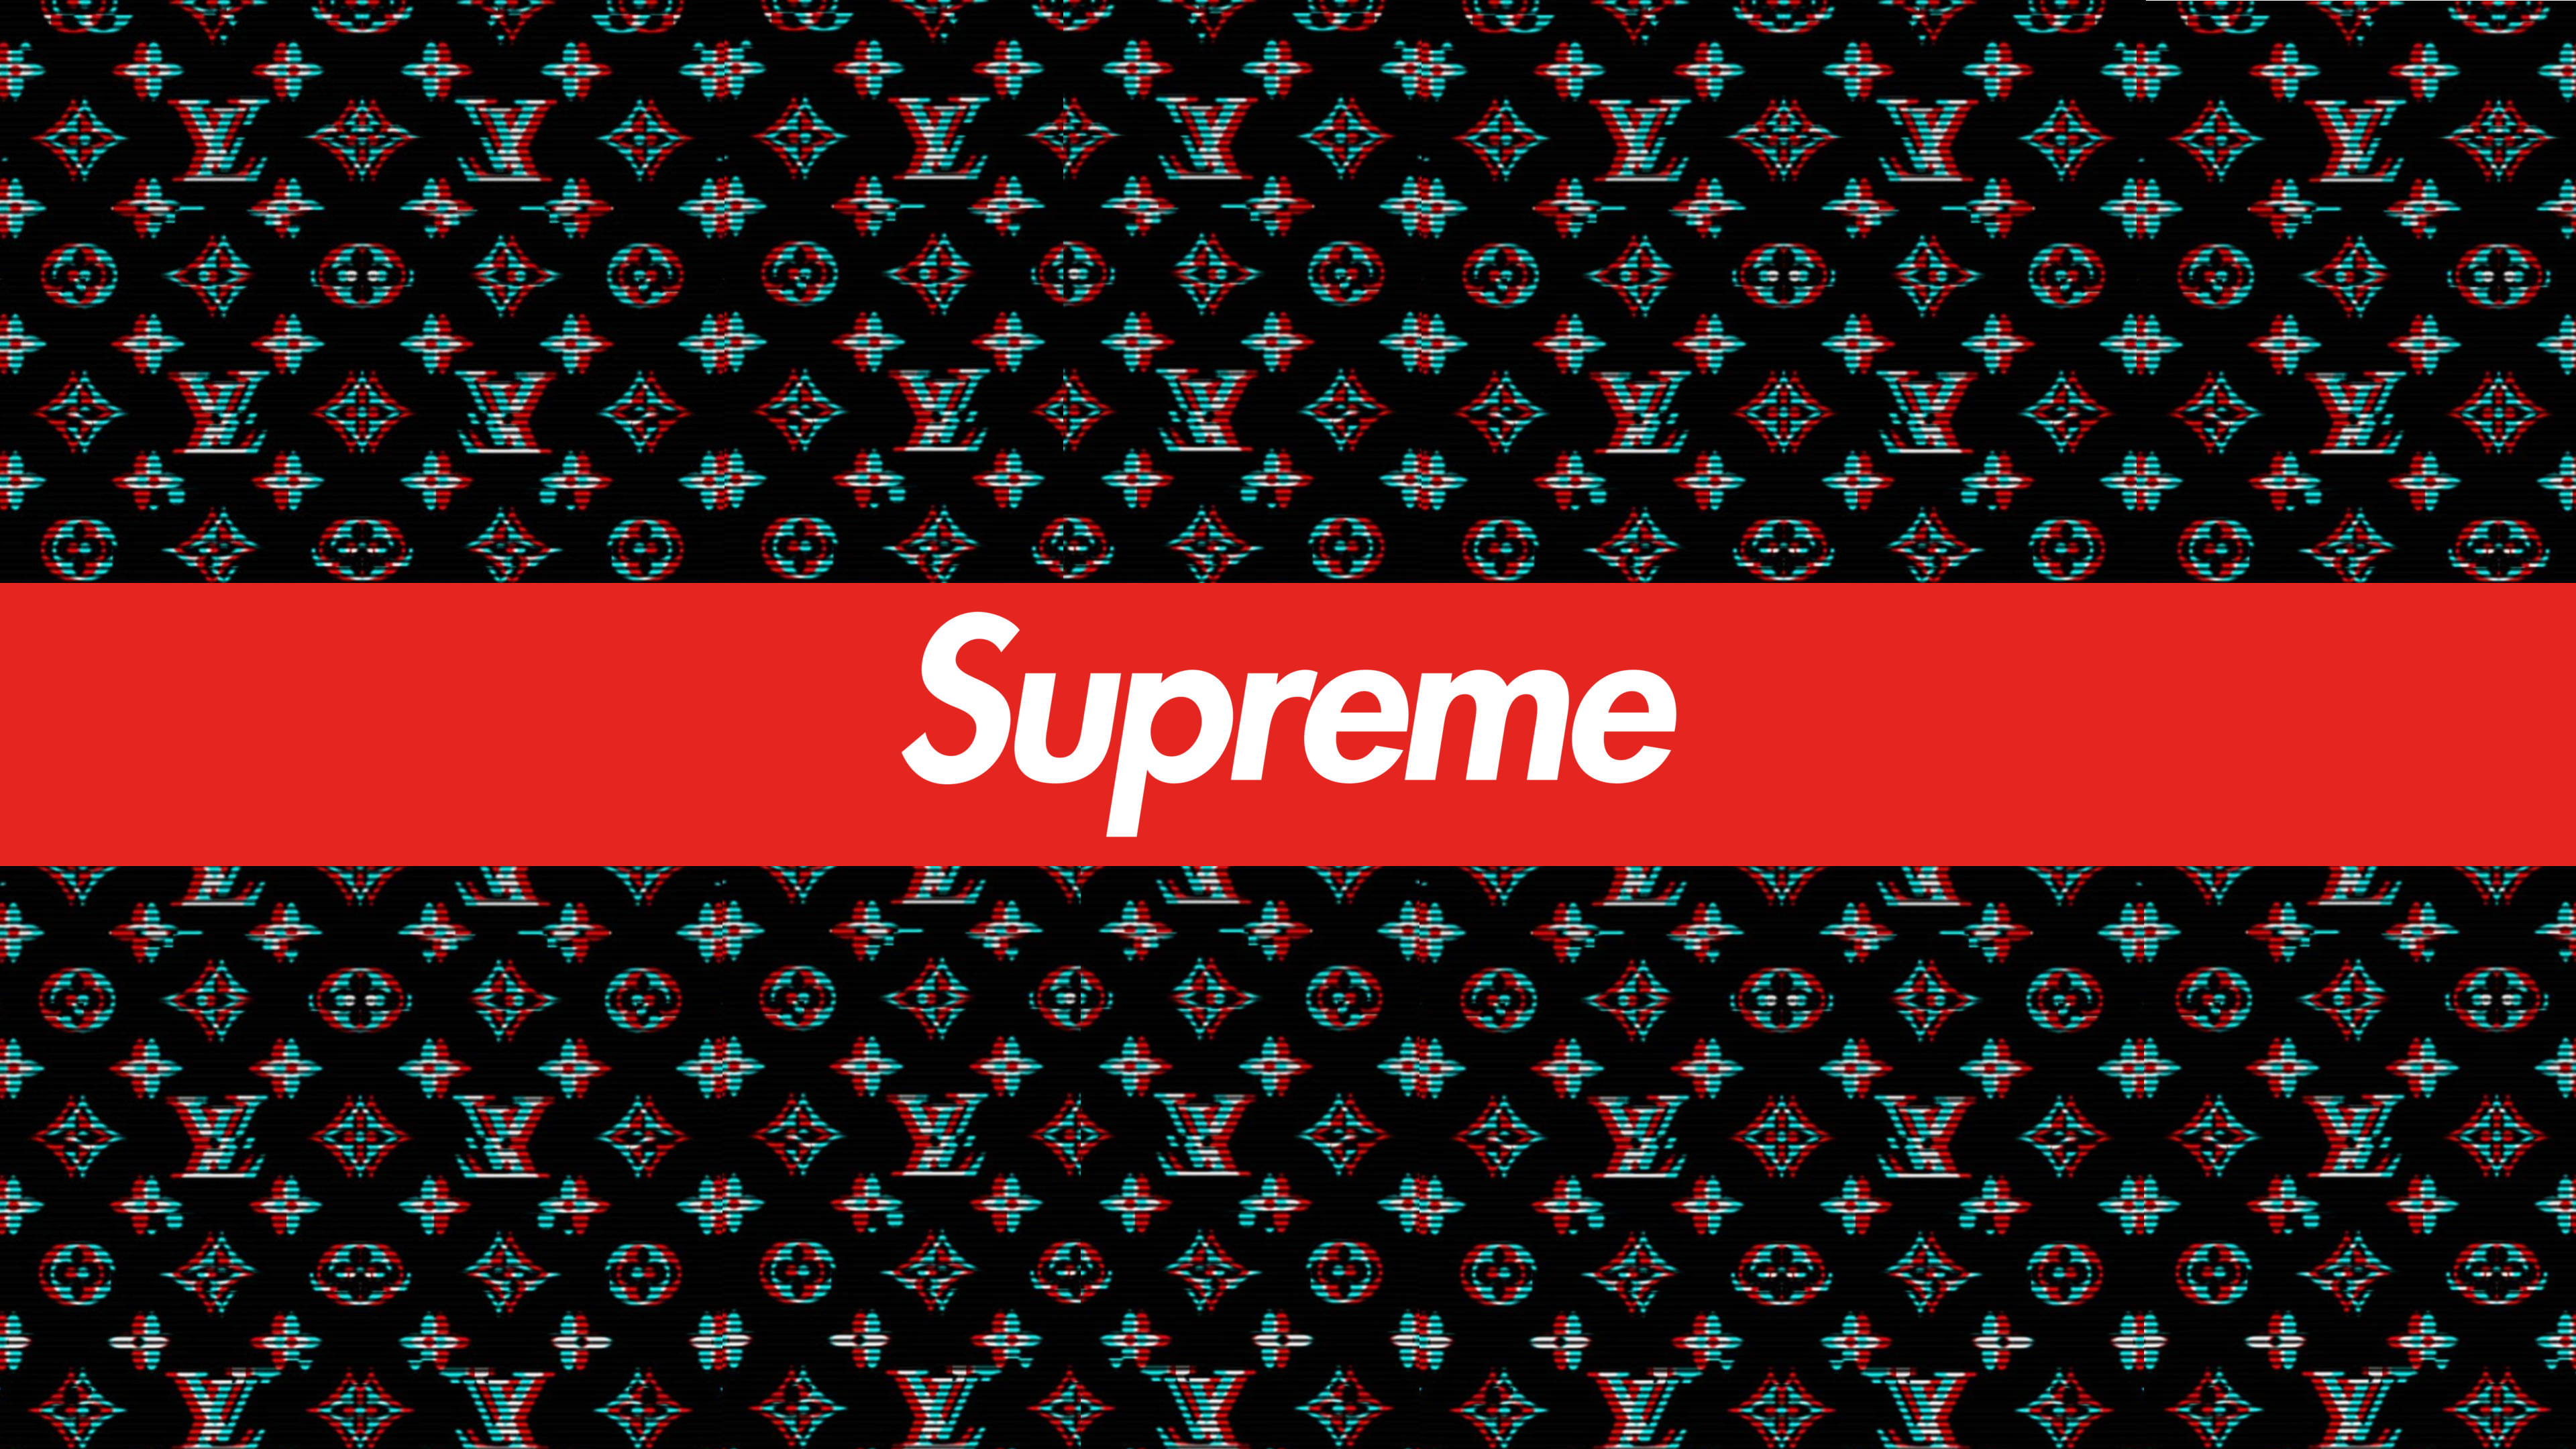 by gxgang instagramcomgxgangig supreme wallpapers   Album on Imgur 3840x2160